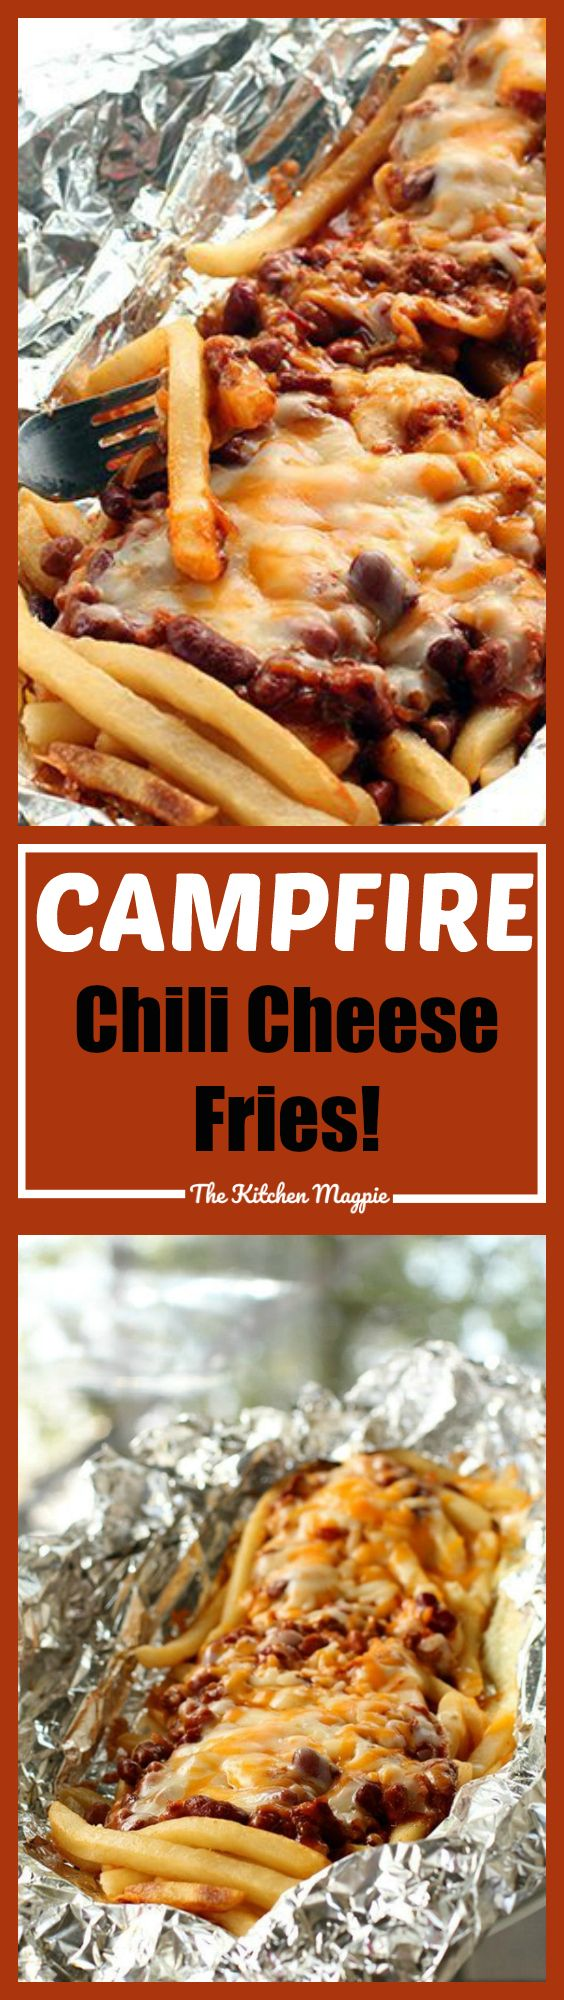 Campfire Chili Cheese Fries Tin Foil Dinner from @kitchenmagpie